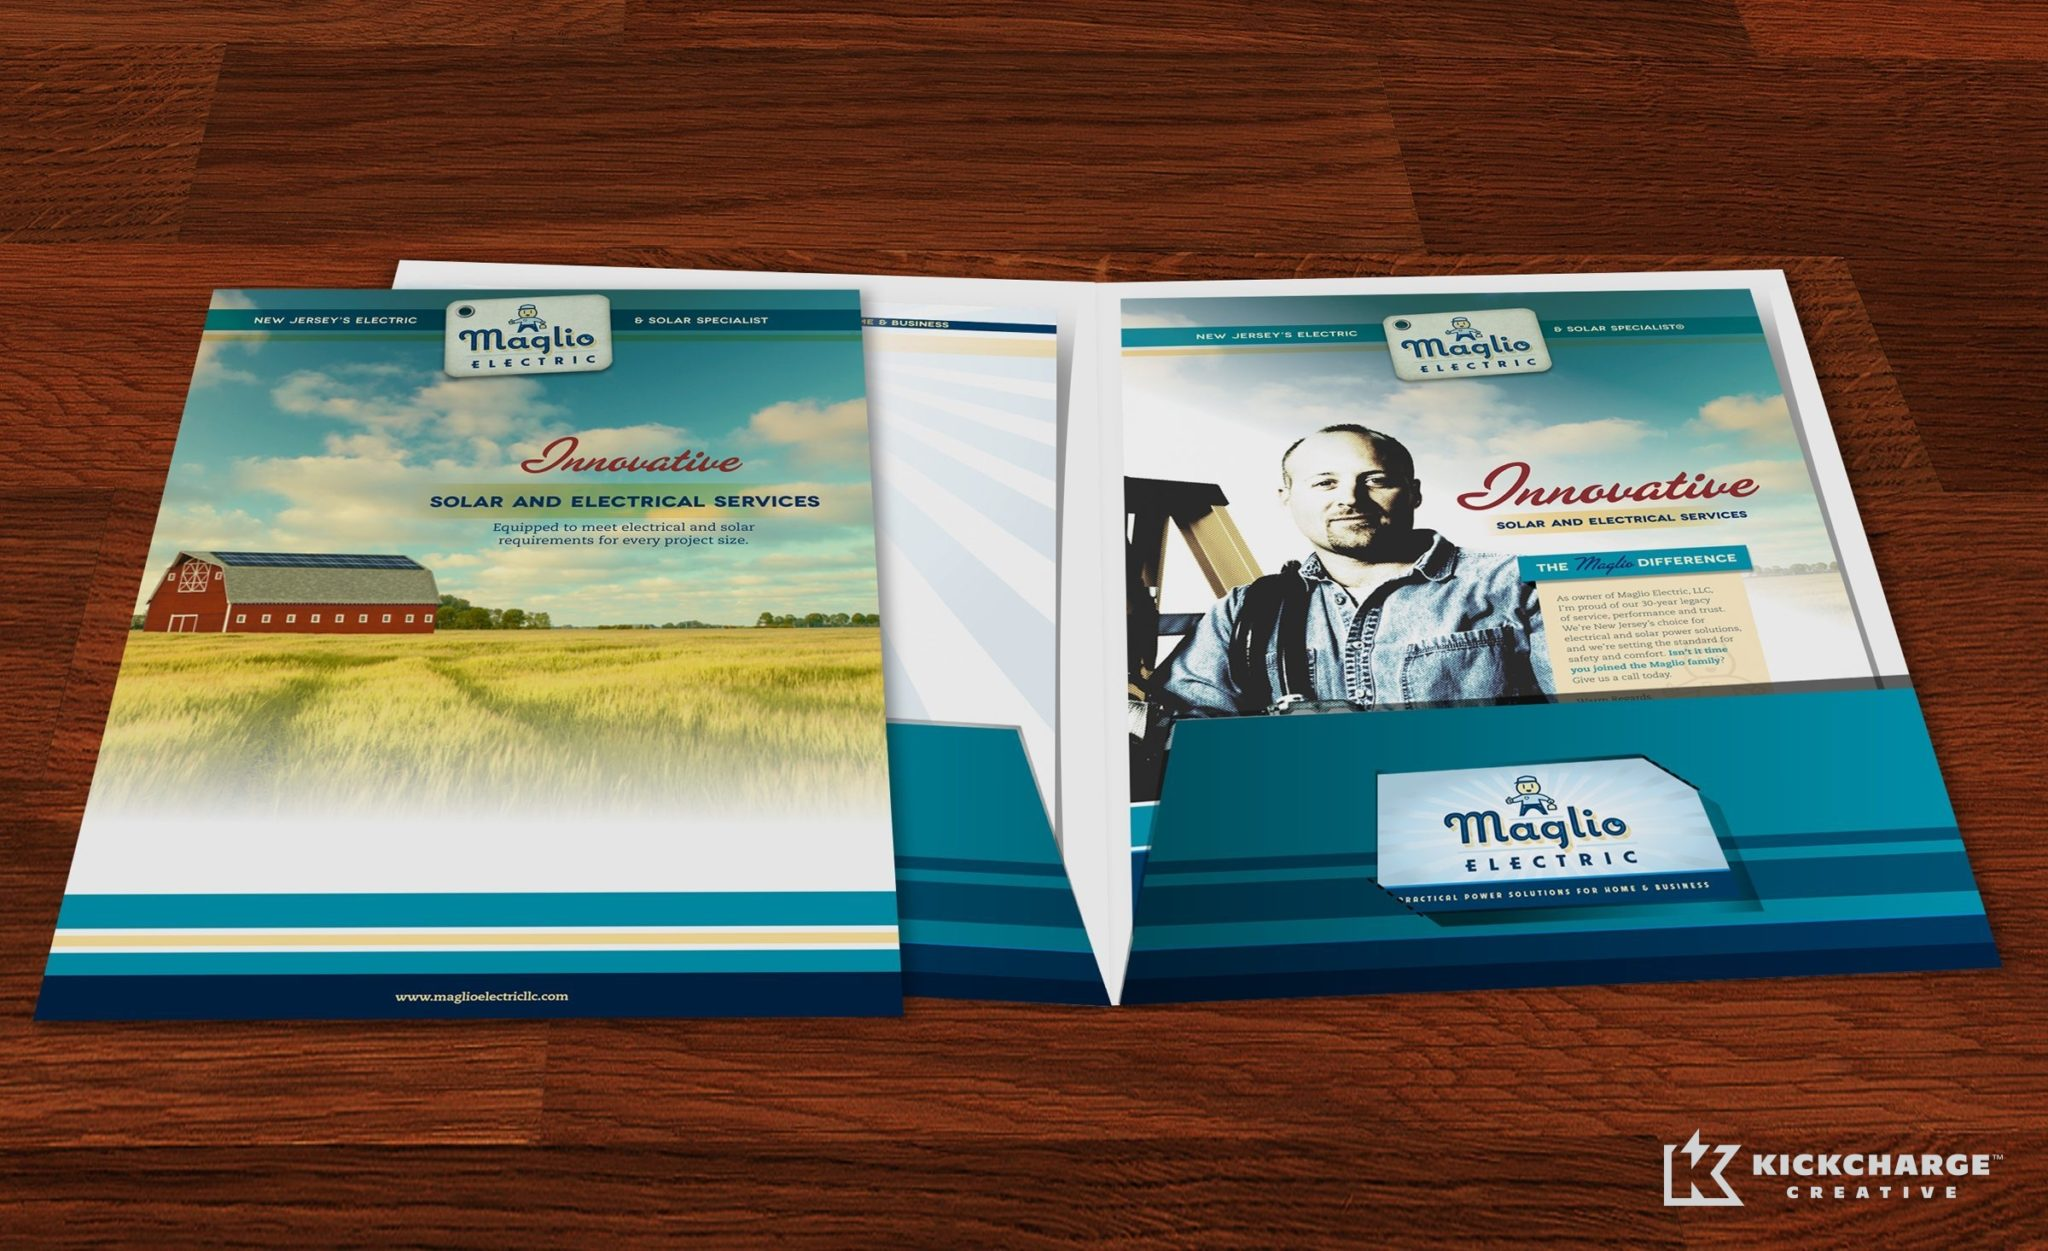 Pocket folder design and printing for this NJ-based electrical company.